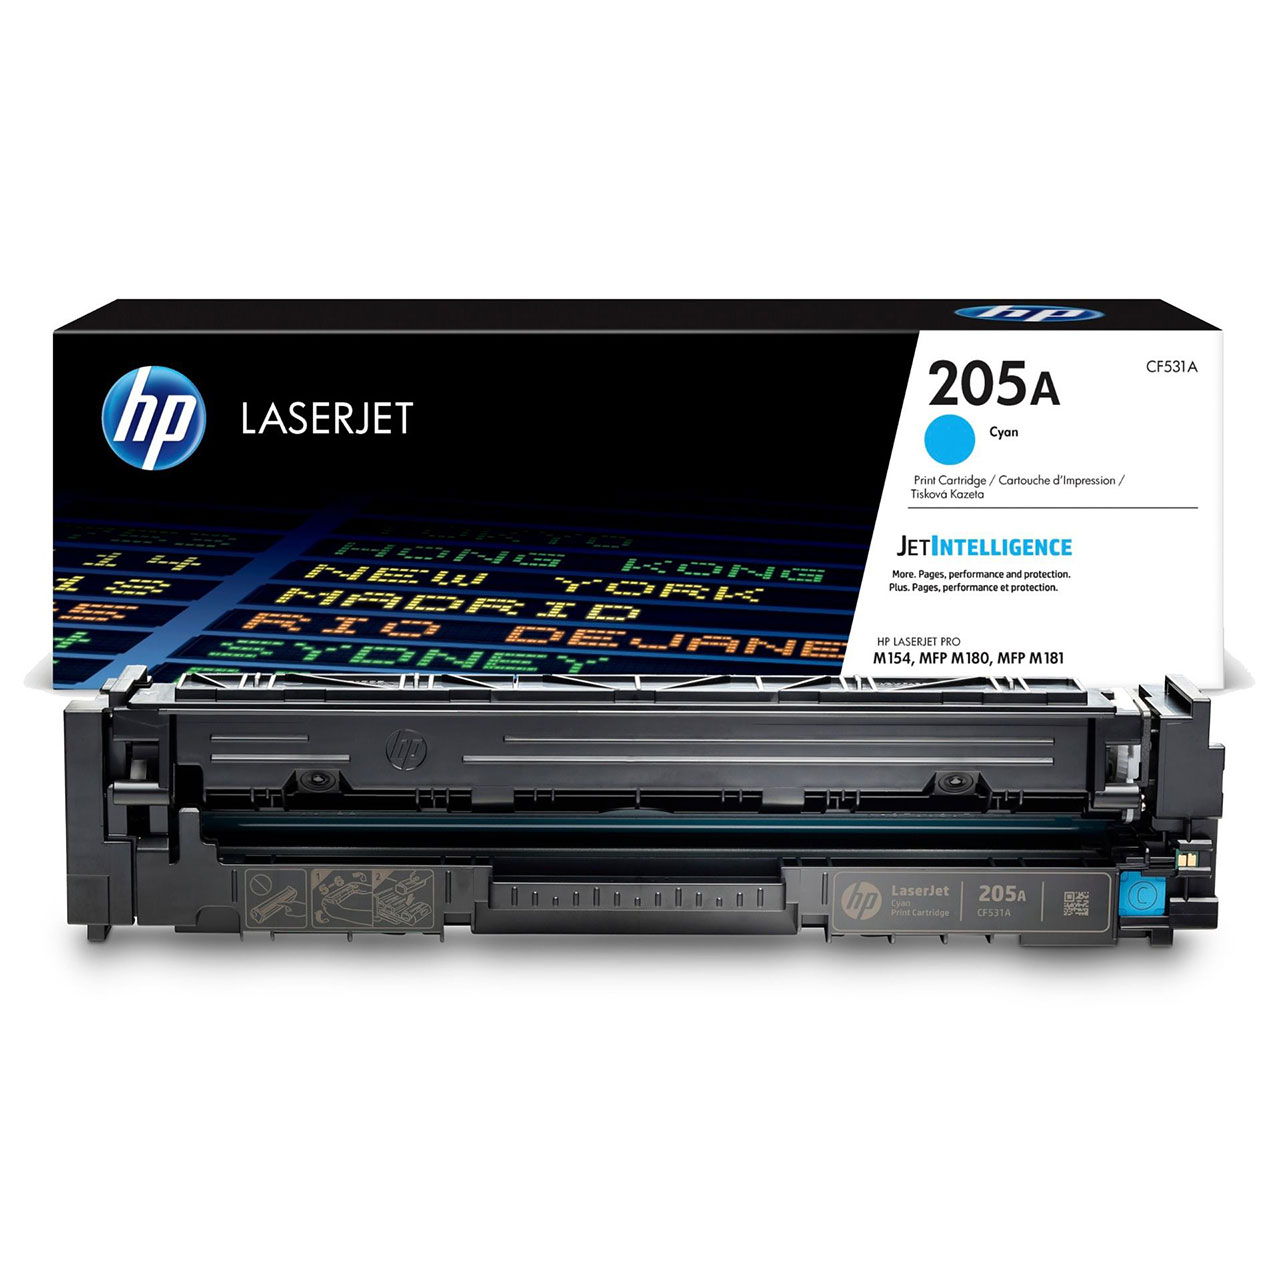 HP 205A Cyan, CF531A Toner Cartridge